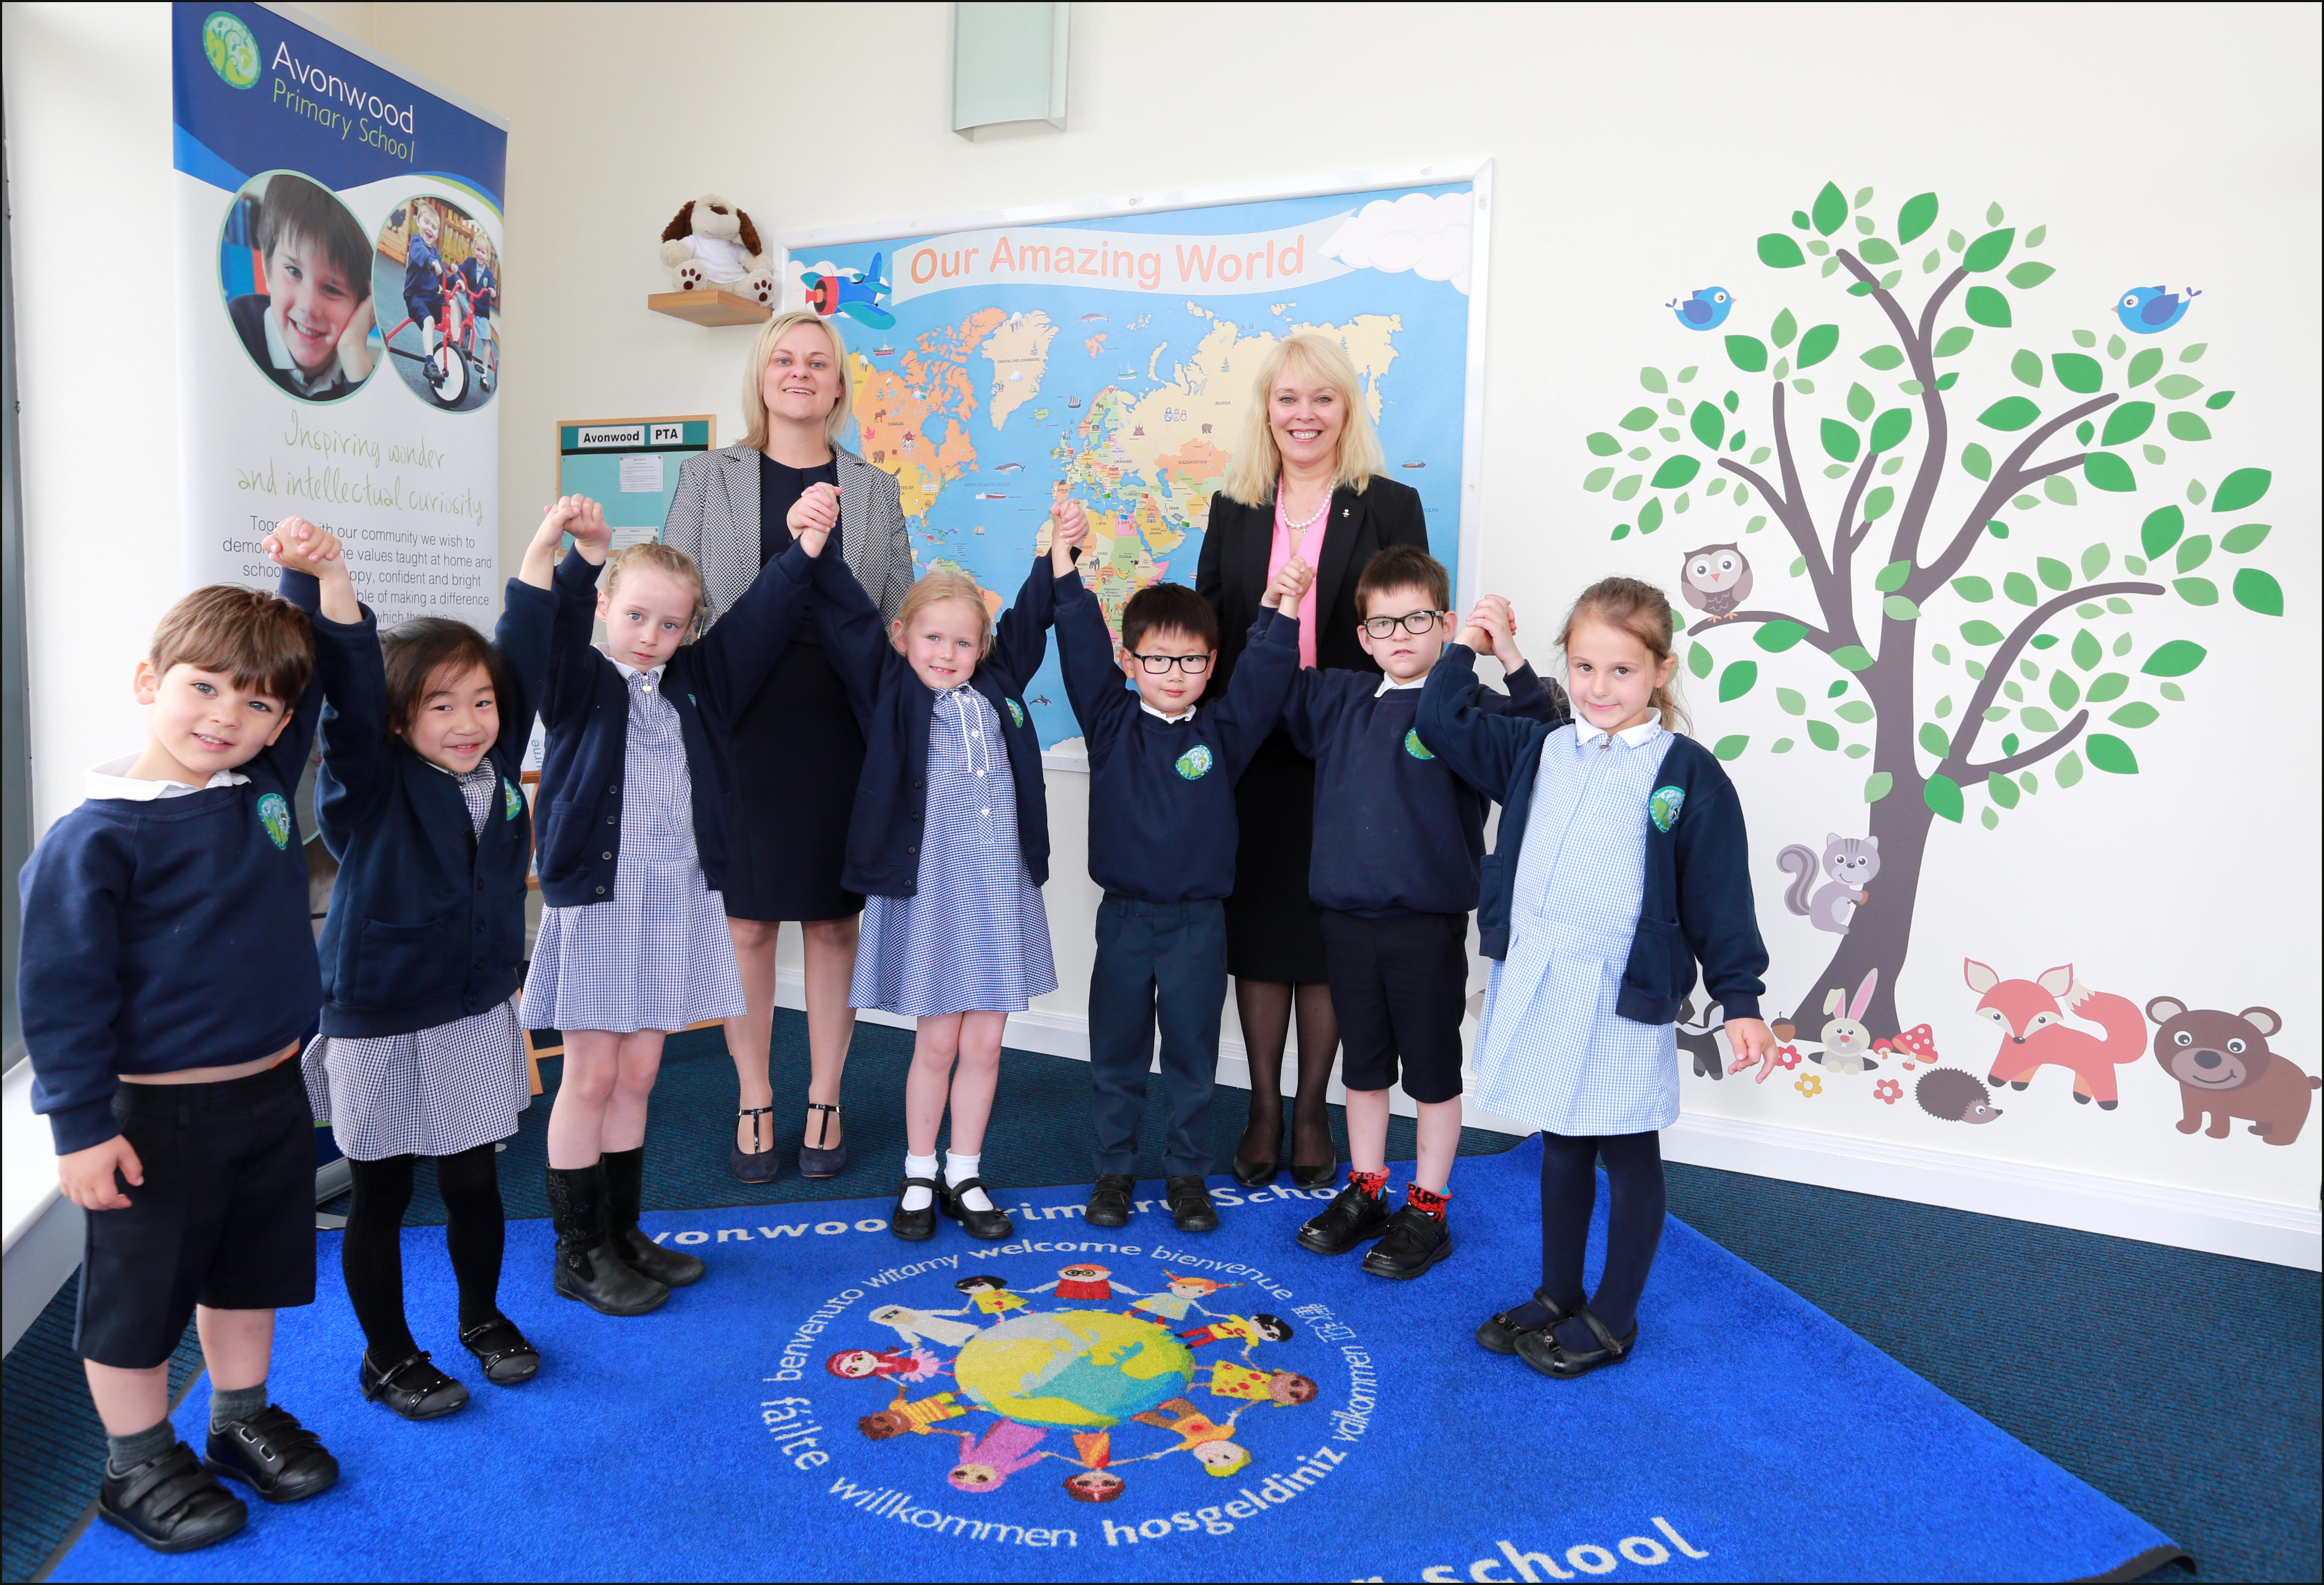 Avonwood Primary School has achieved Earth Charter status. Head Annie Dowling and Avonbourne Trust CEO Debbie Godfrey-Phaure are pictured with pupils.